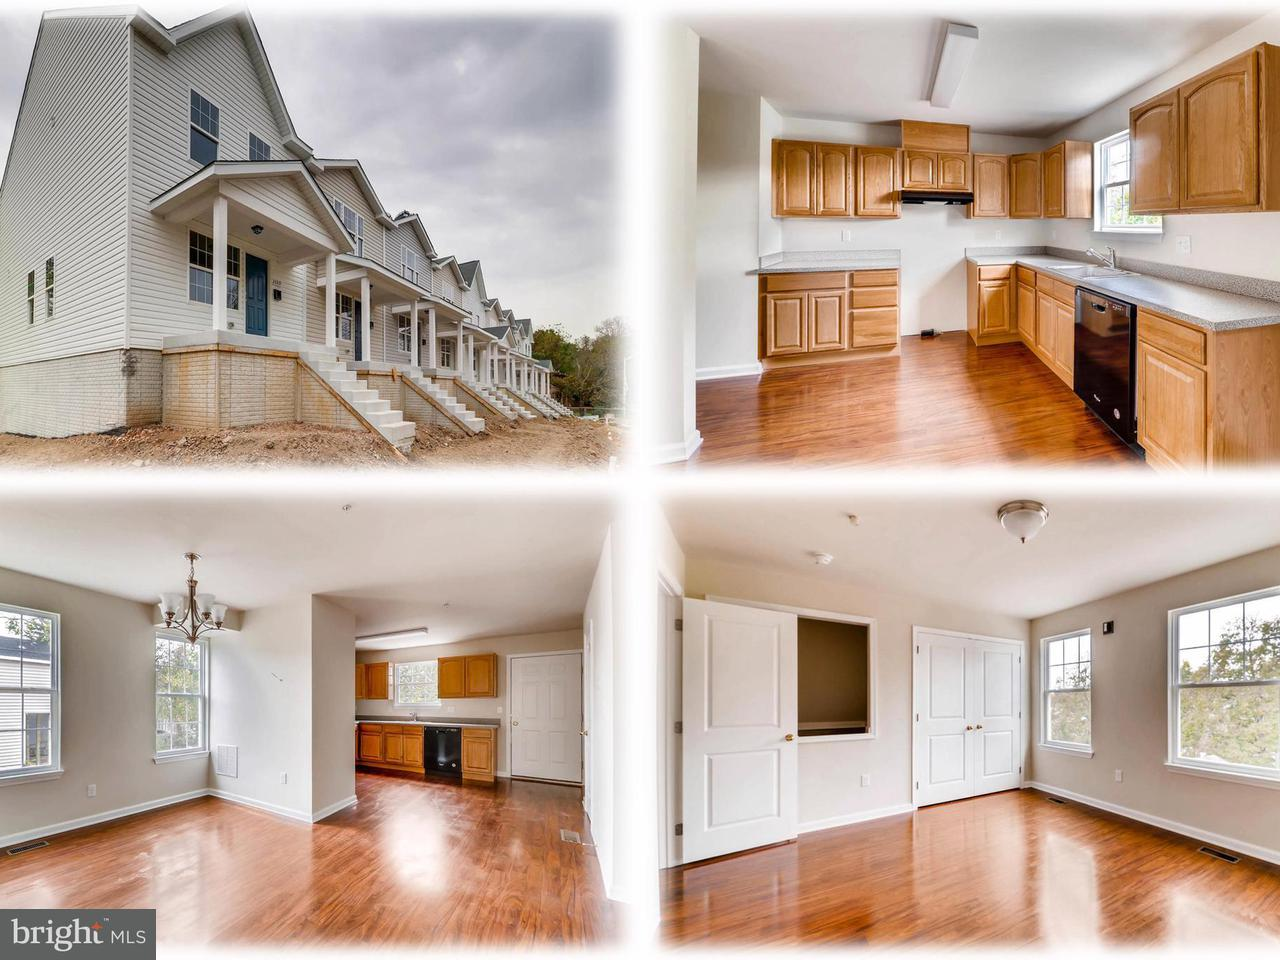 Single Family for Sale at 2623 Huron St Baltimore, Maryland 21230 United States